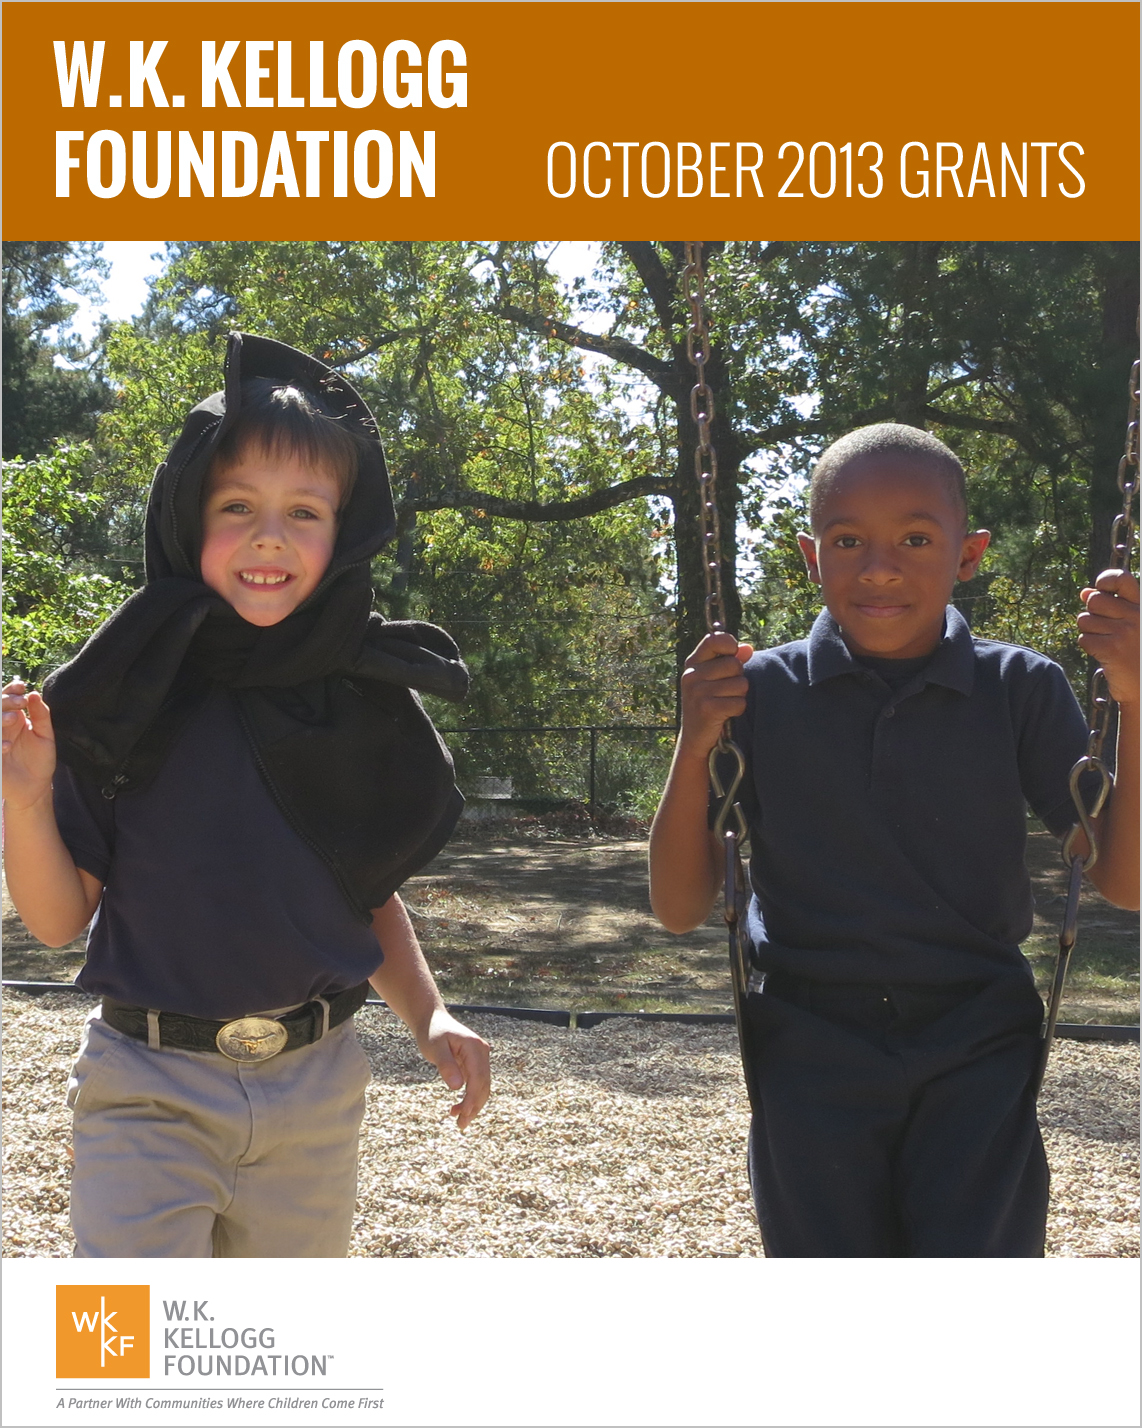 W.K. Kellogg Foundation Grants - October 2013